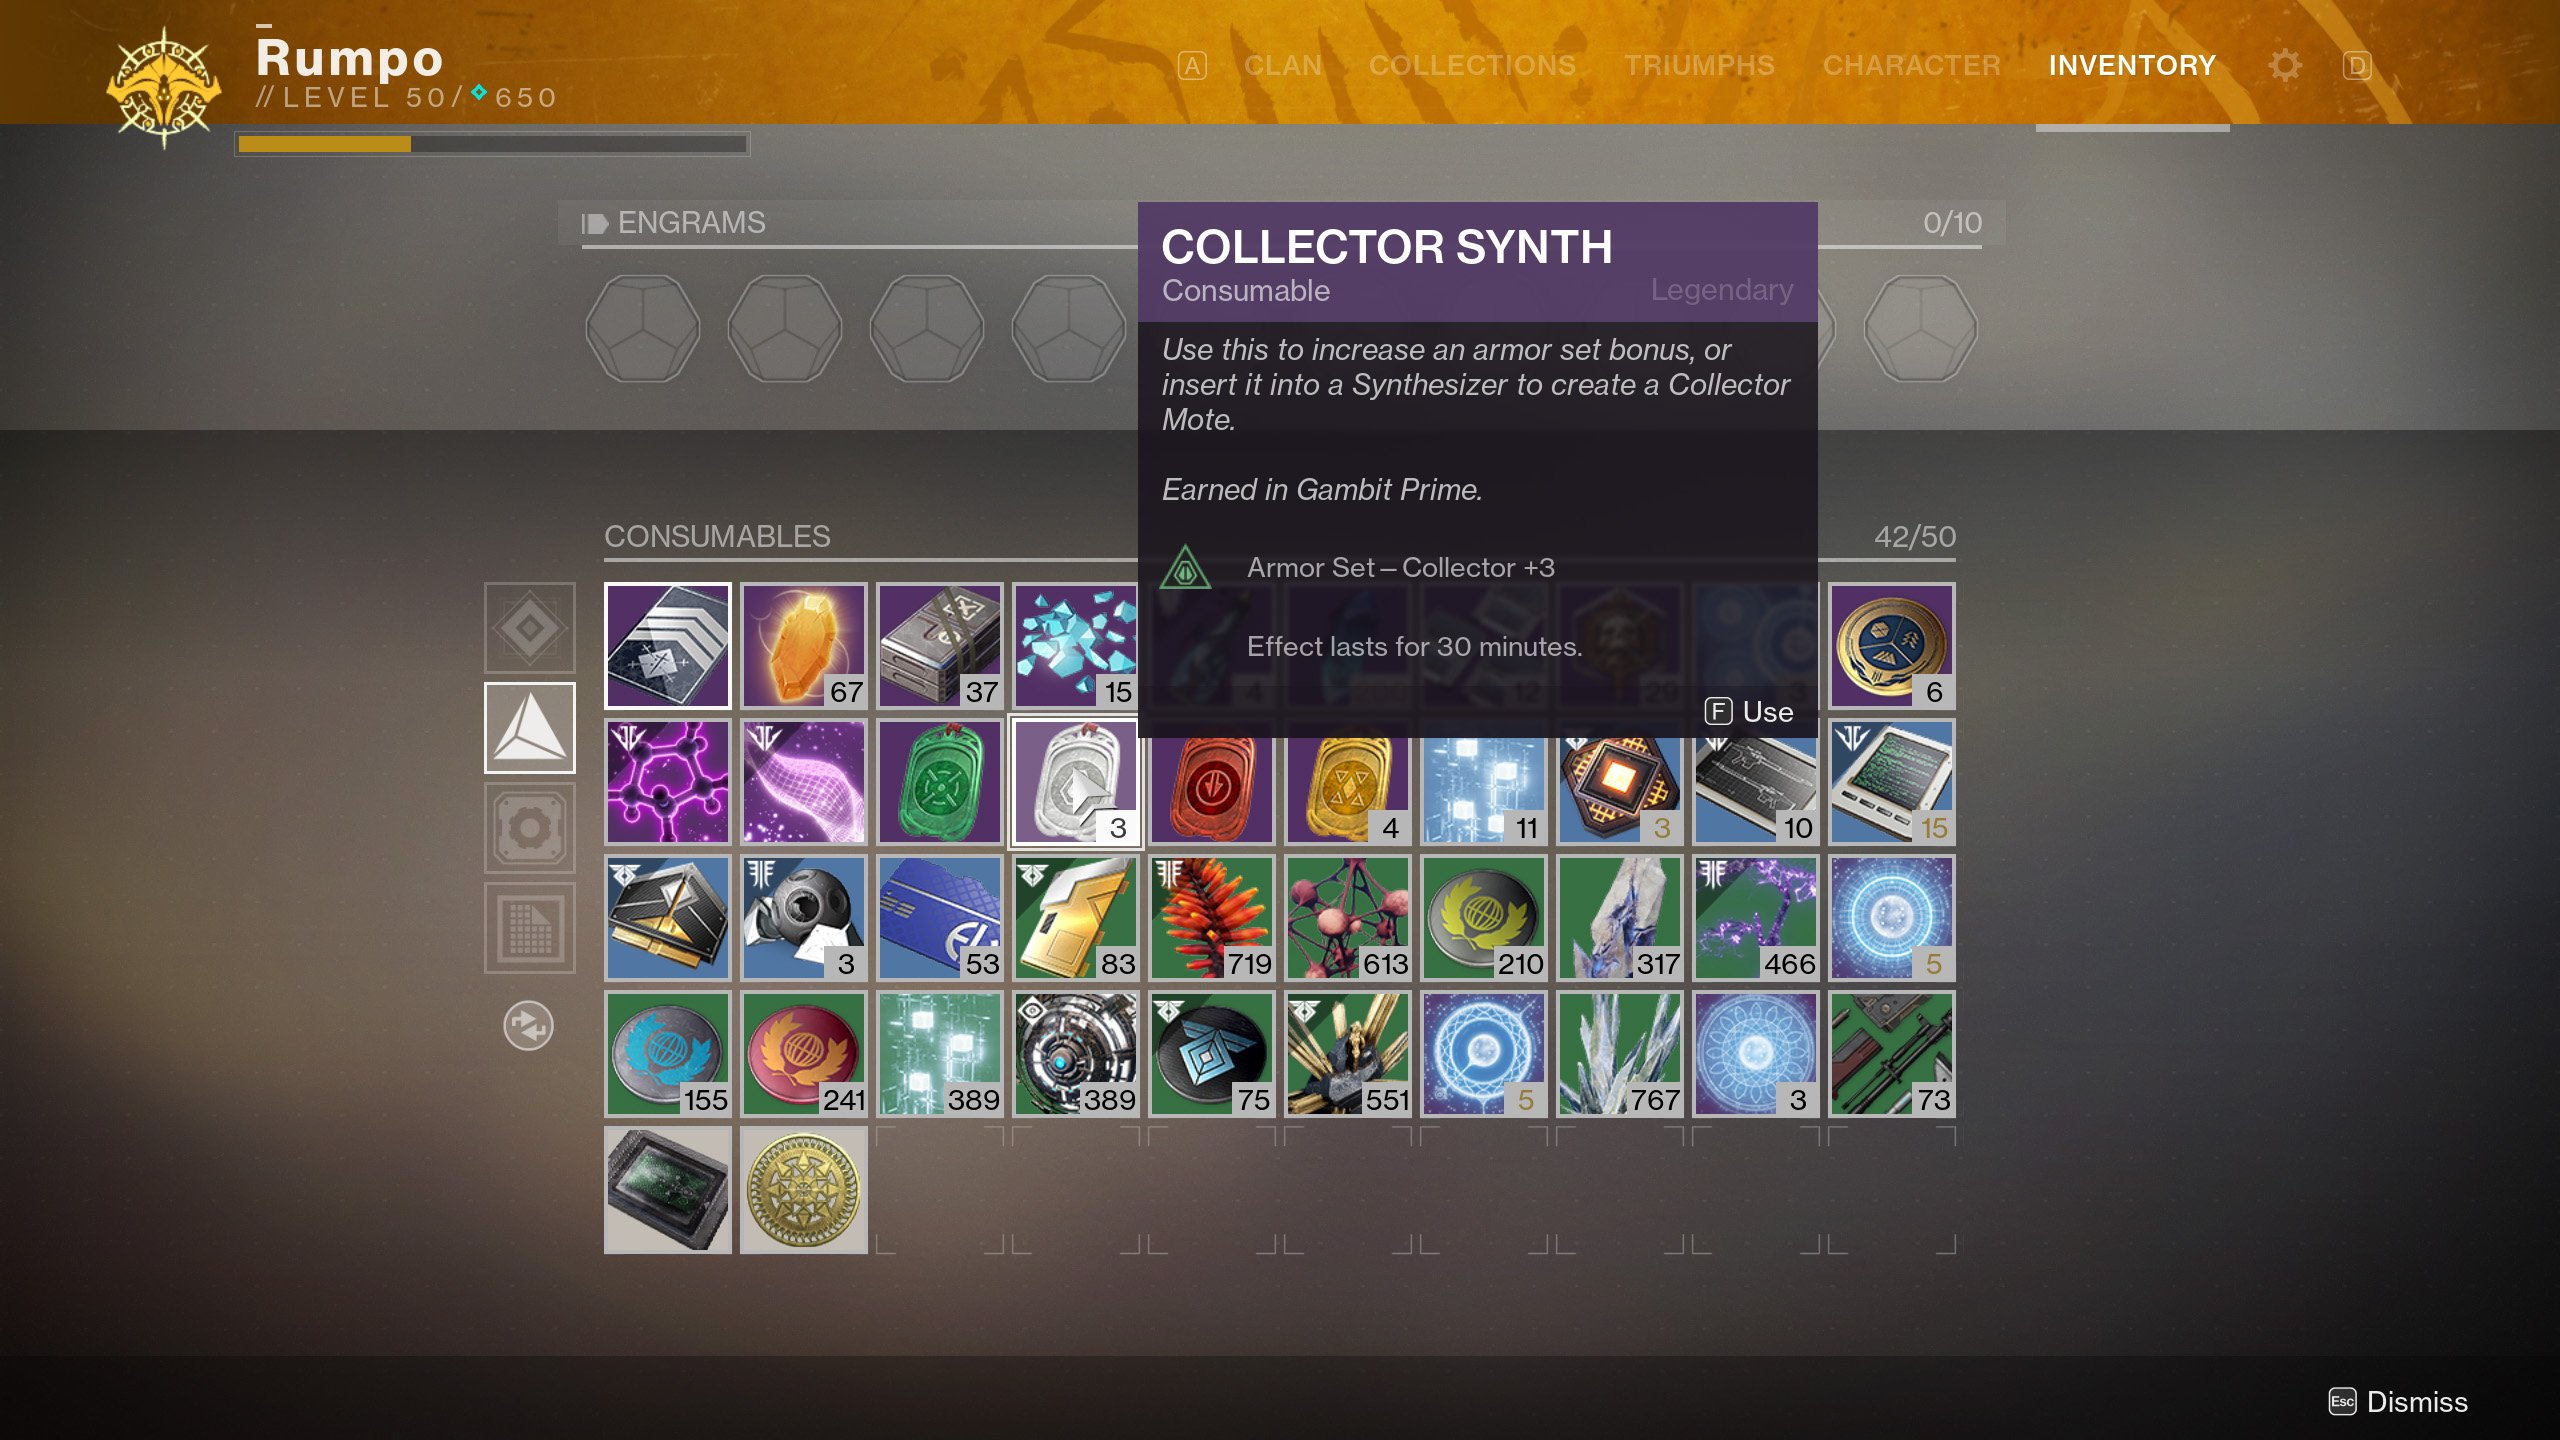 Destiny 2 Collector Synth details